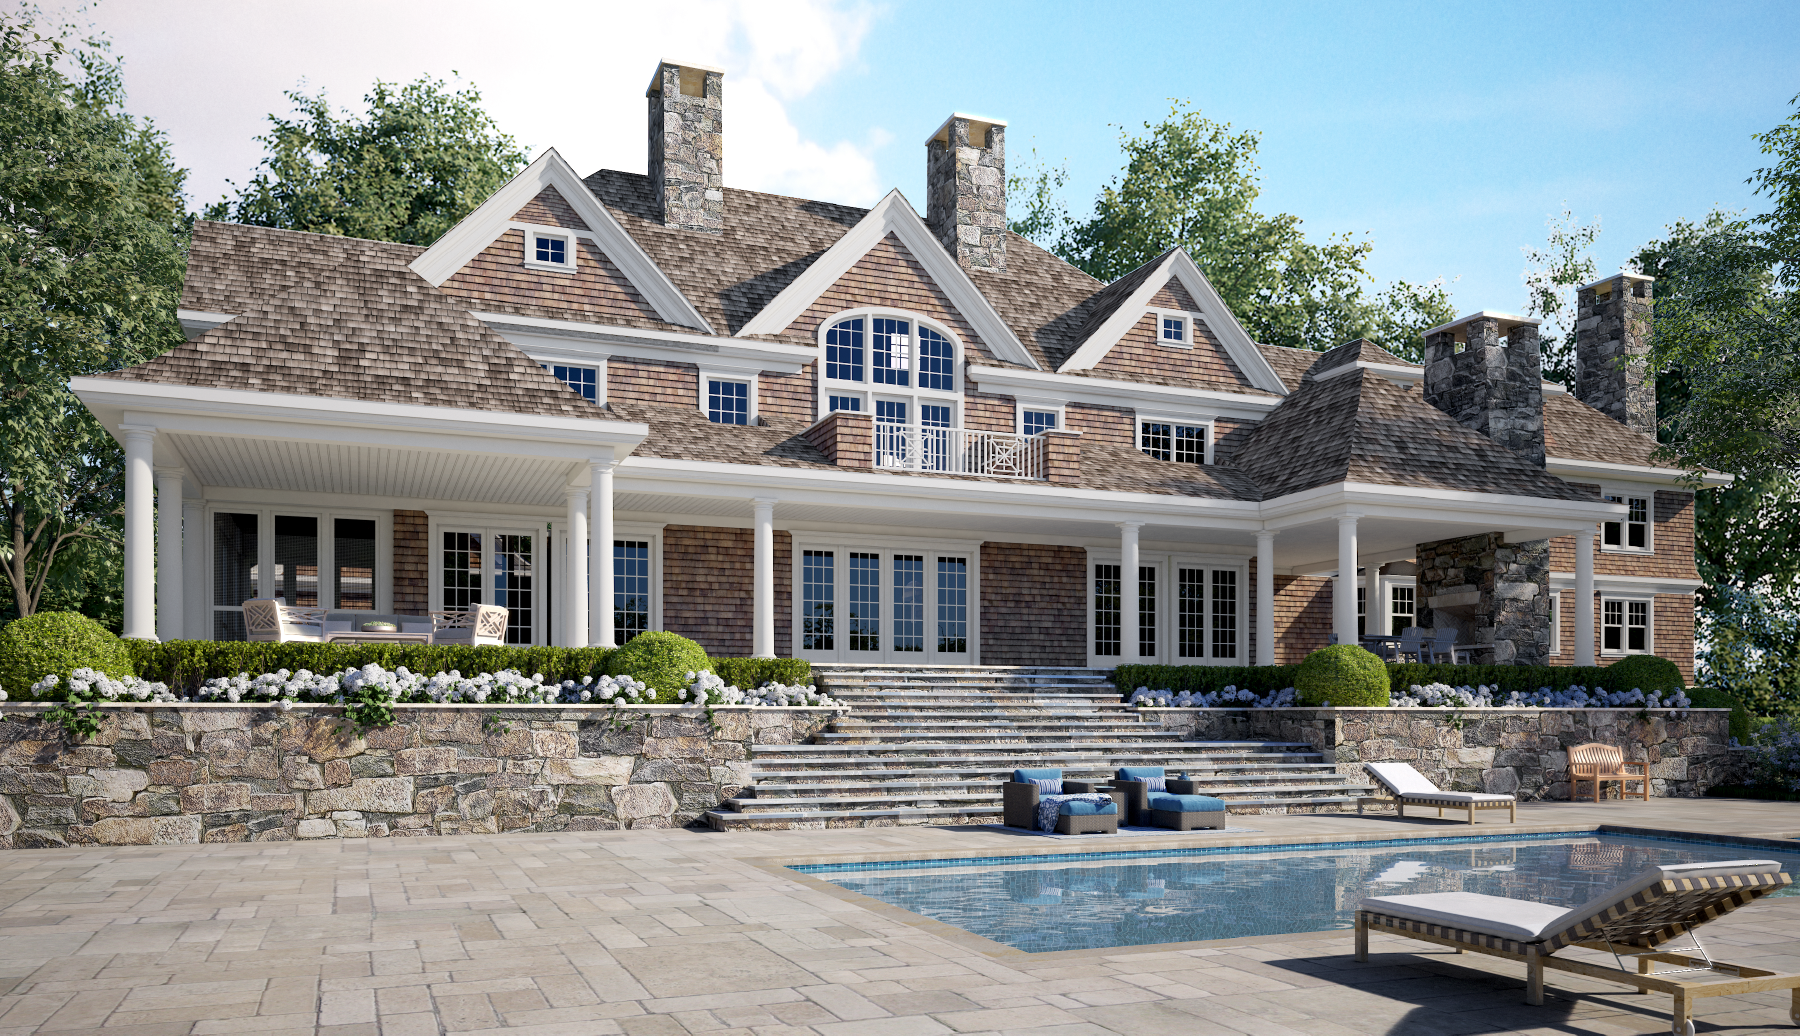 Large House Design with a Pool